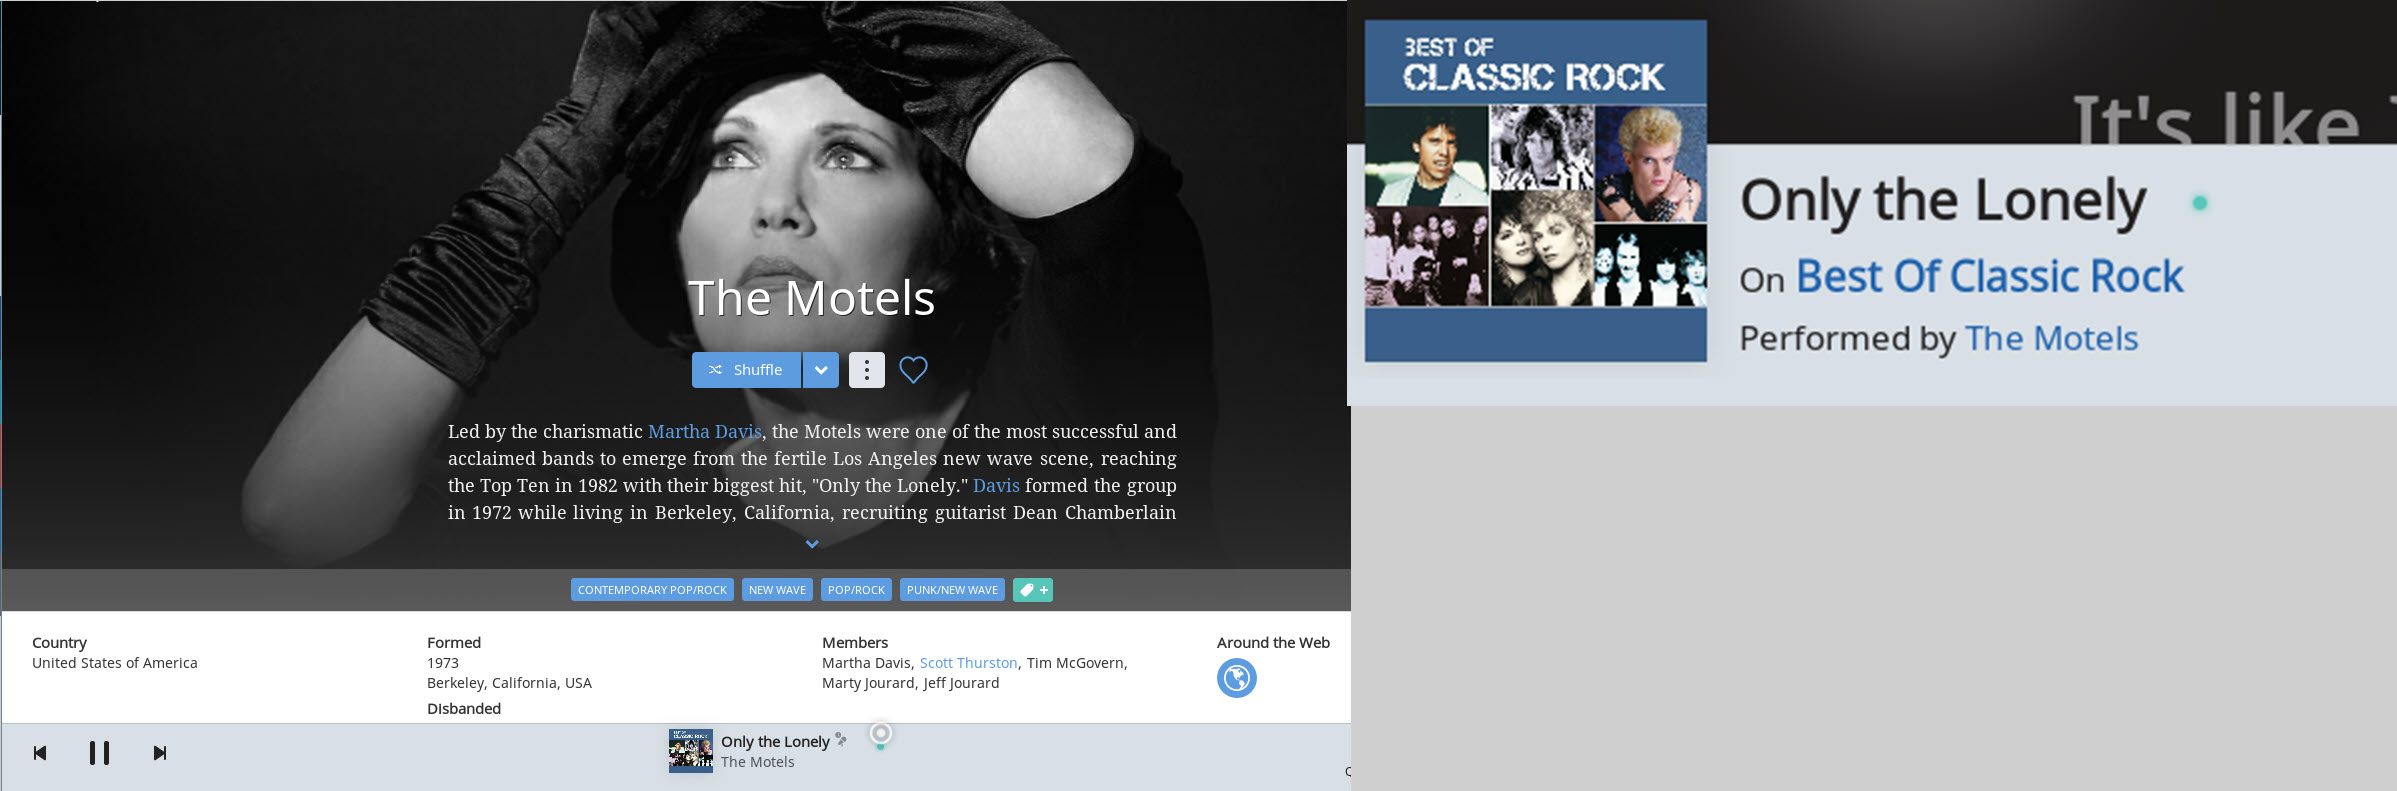 The Motels Only the Lonely.jpg